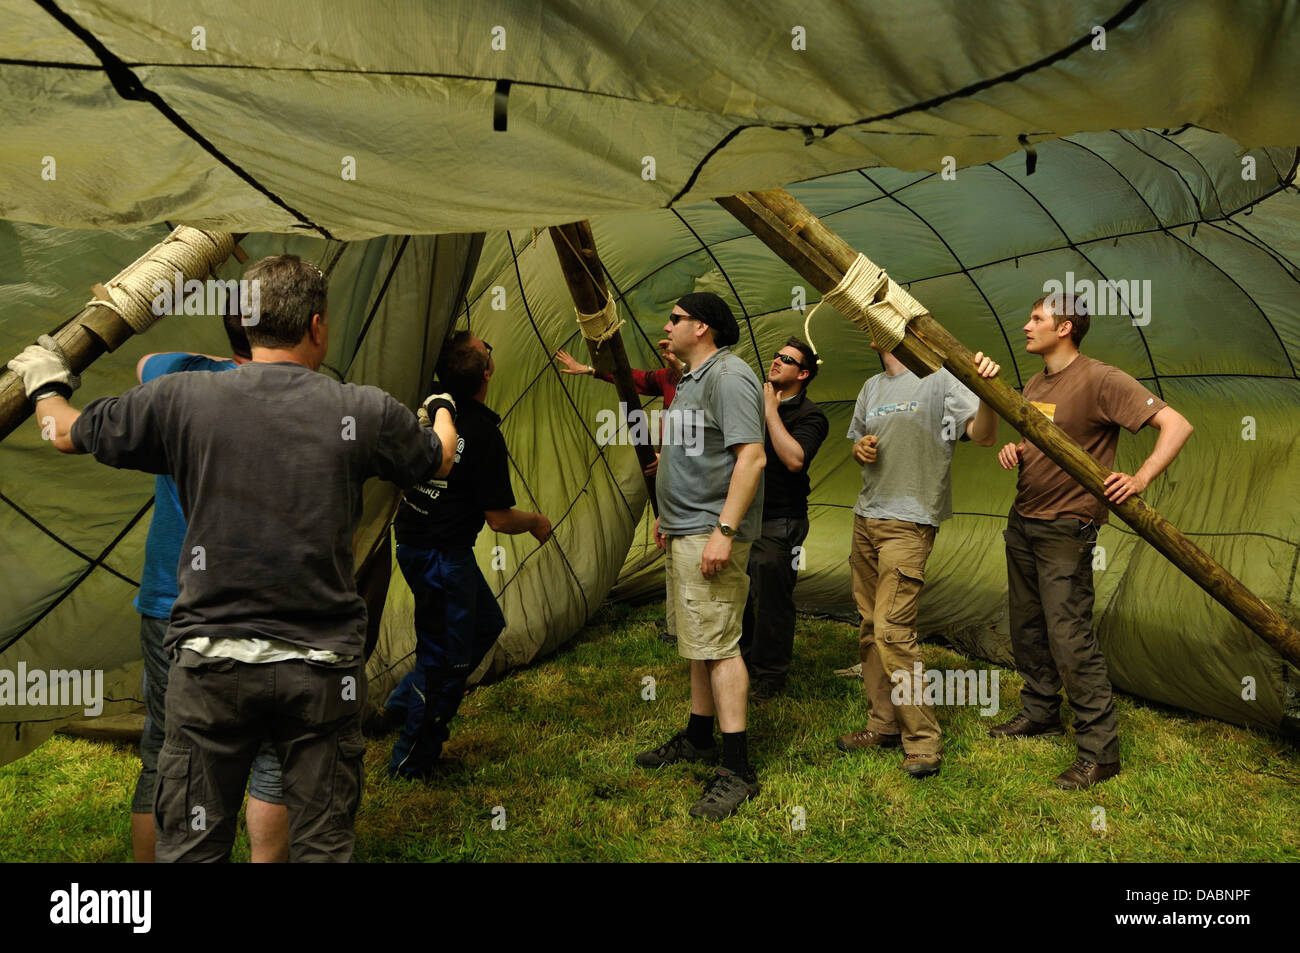 Teamwork excercise putting up a tent - Stock Image